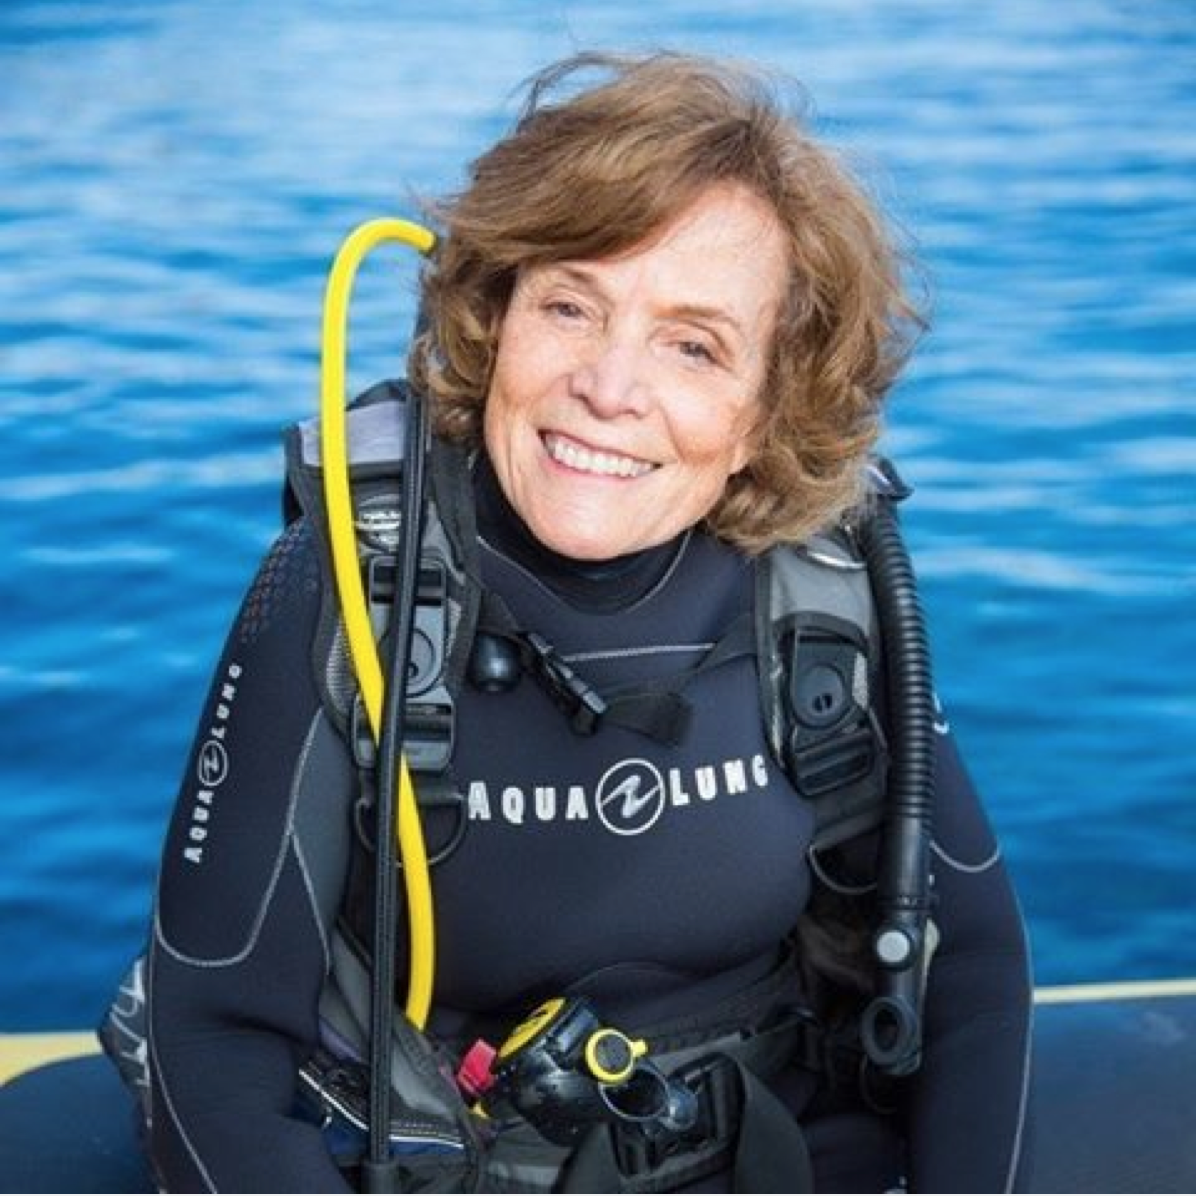 sursa imaginii http://www.restorative-leadership.org/on-leading-podcast/sylvia-earle